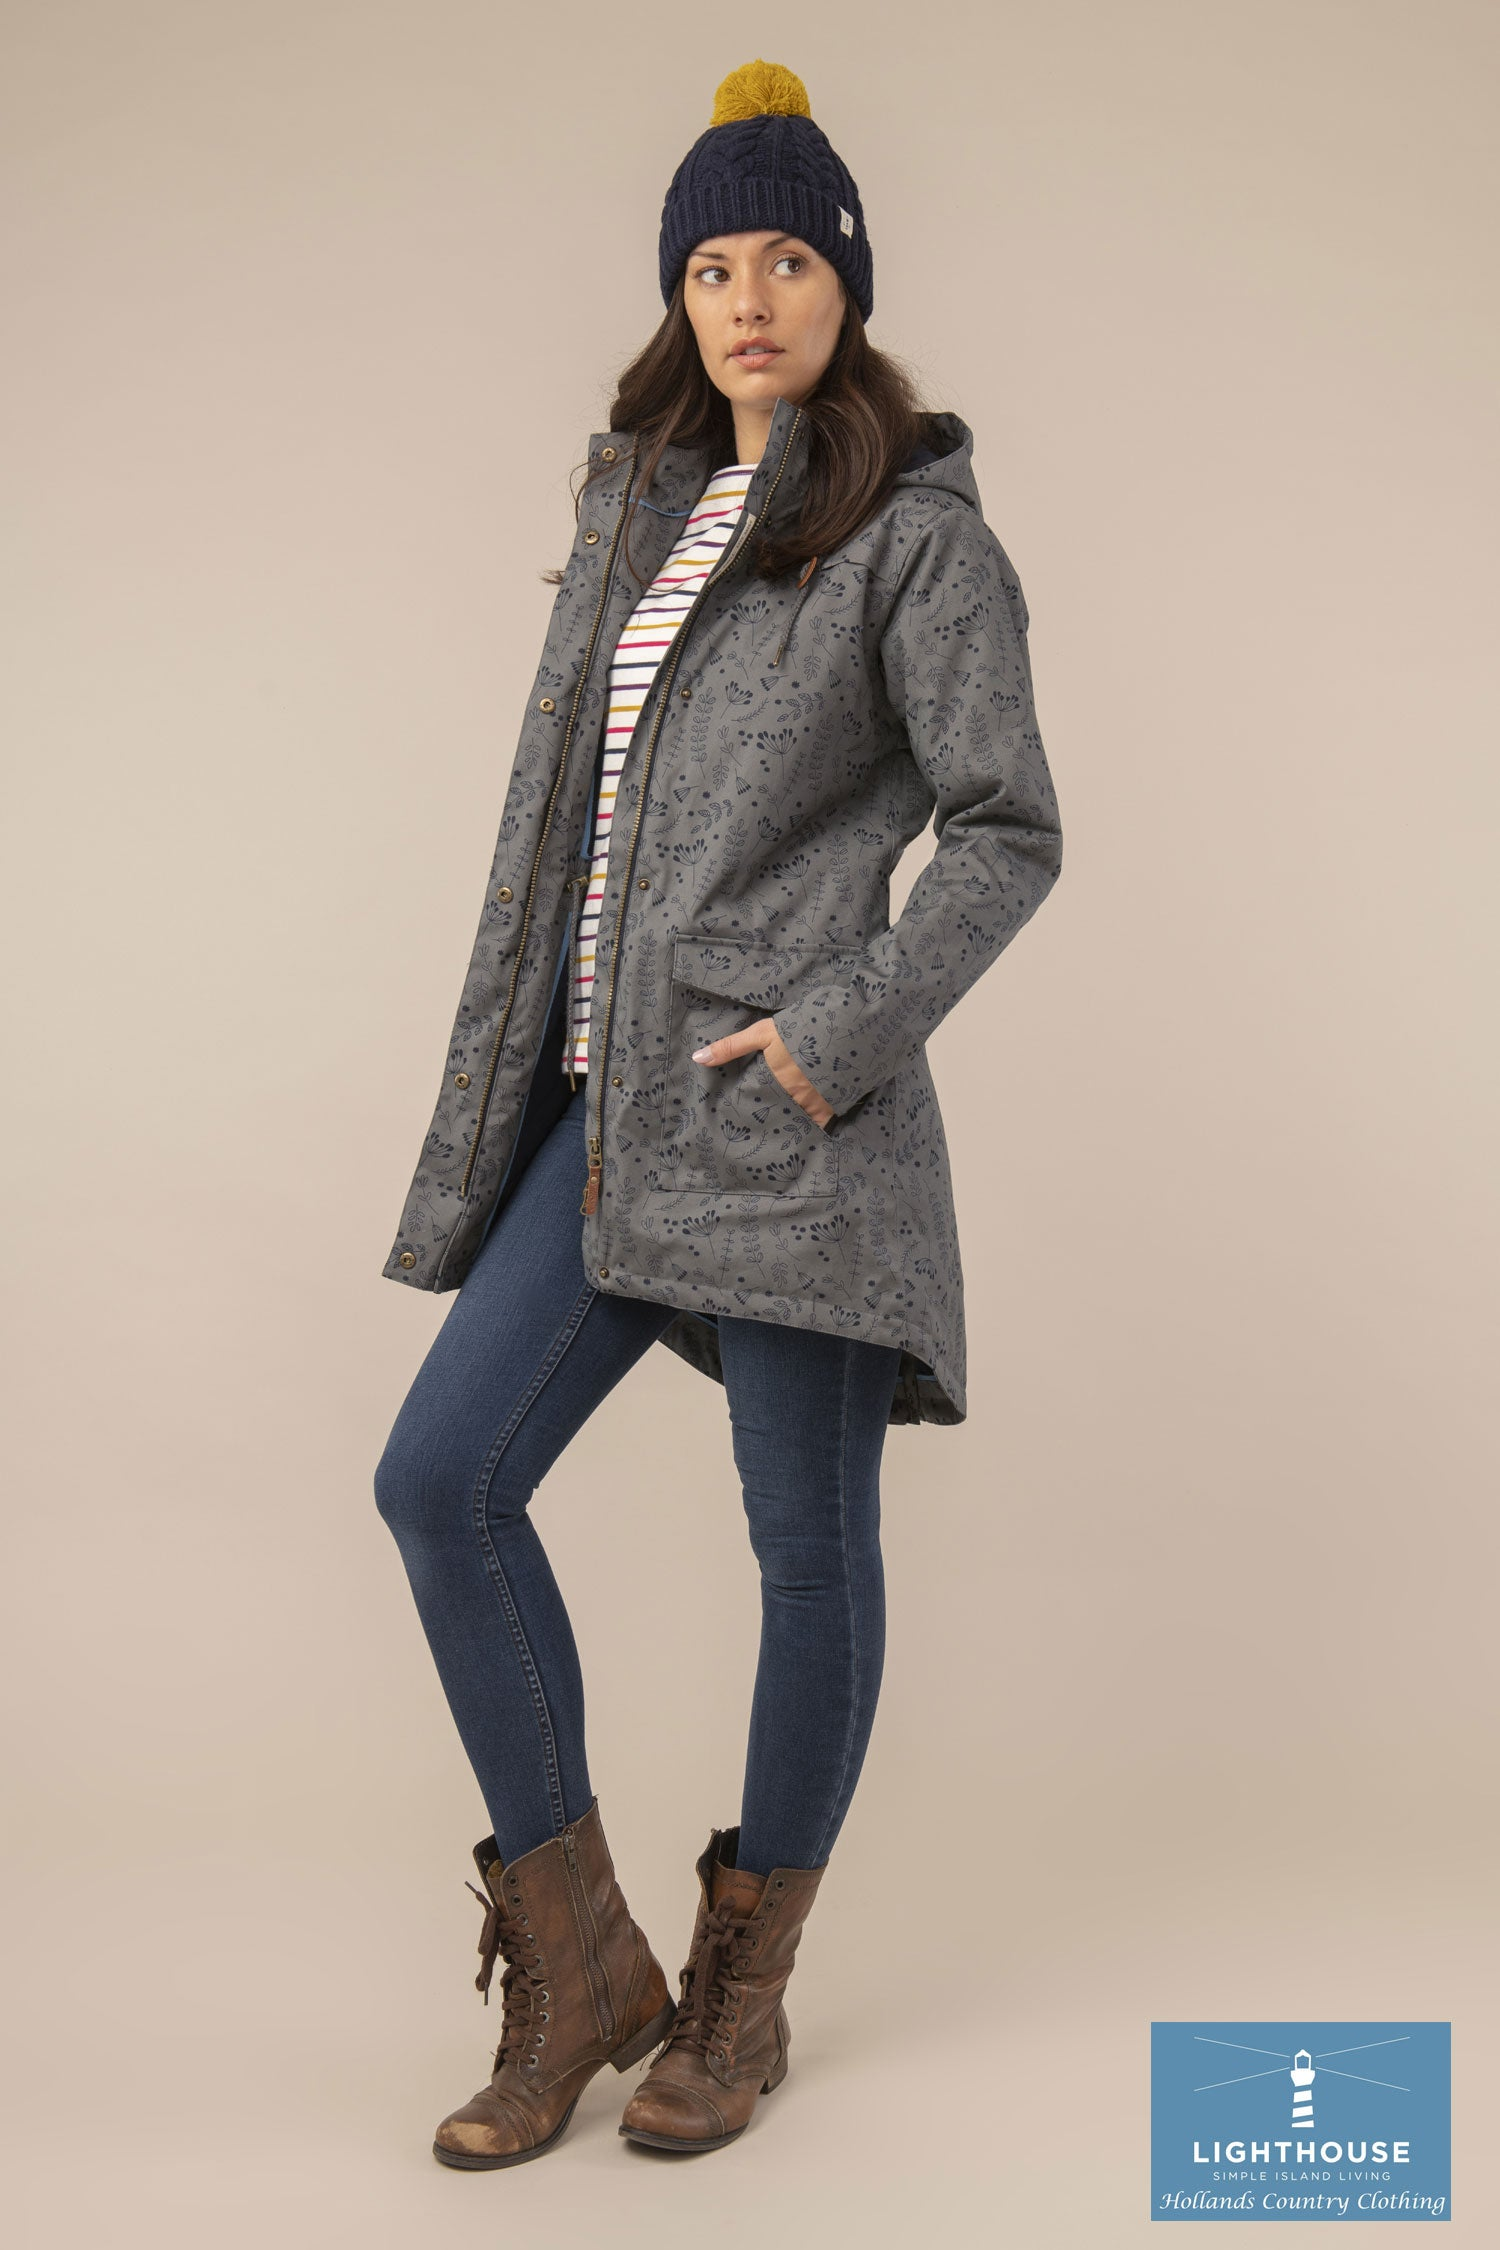 lady wearing Alanna Quilted Waterproof Coat by Lighthouse